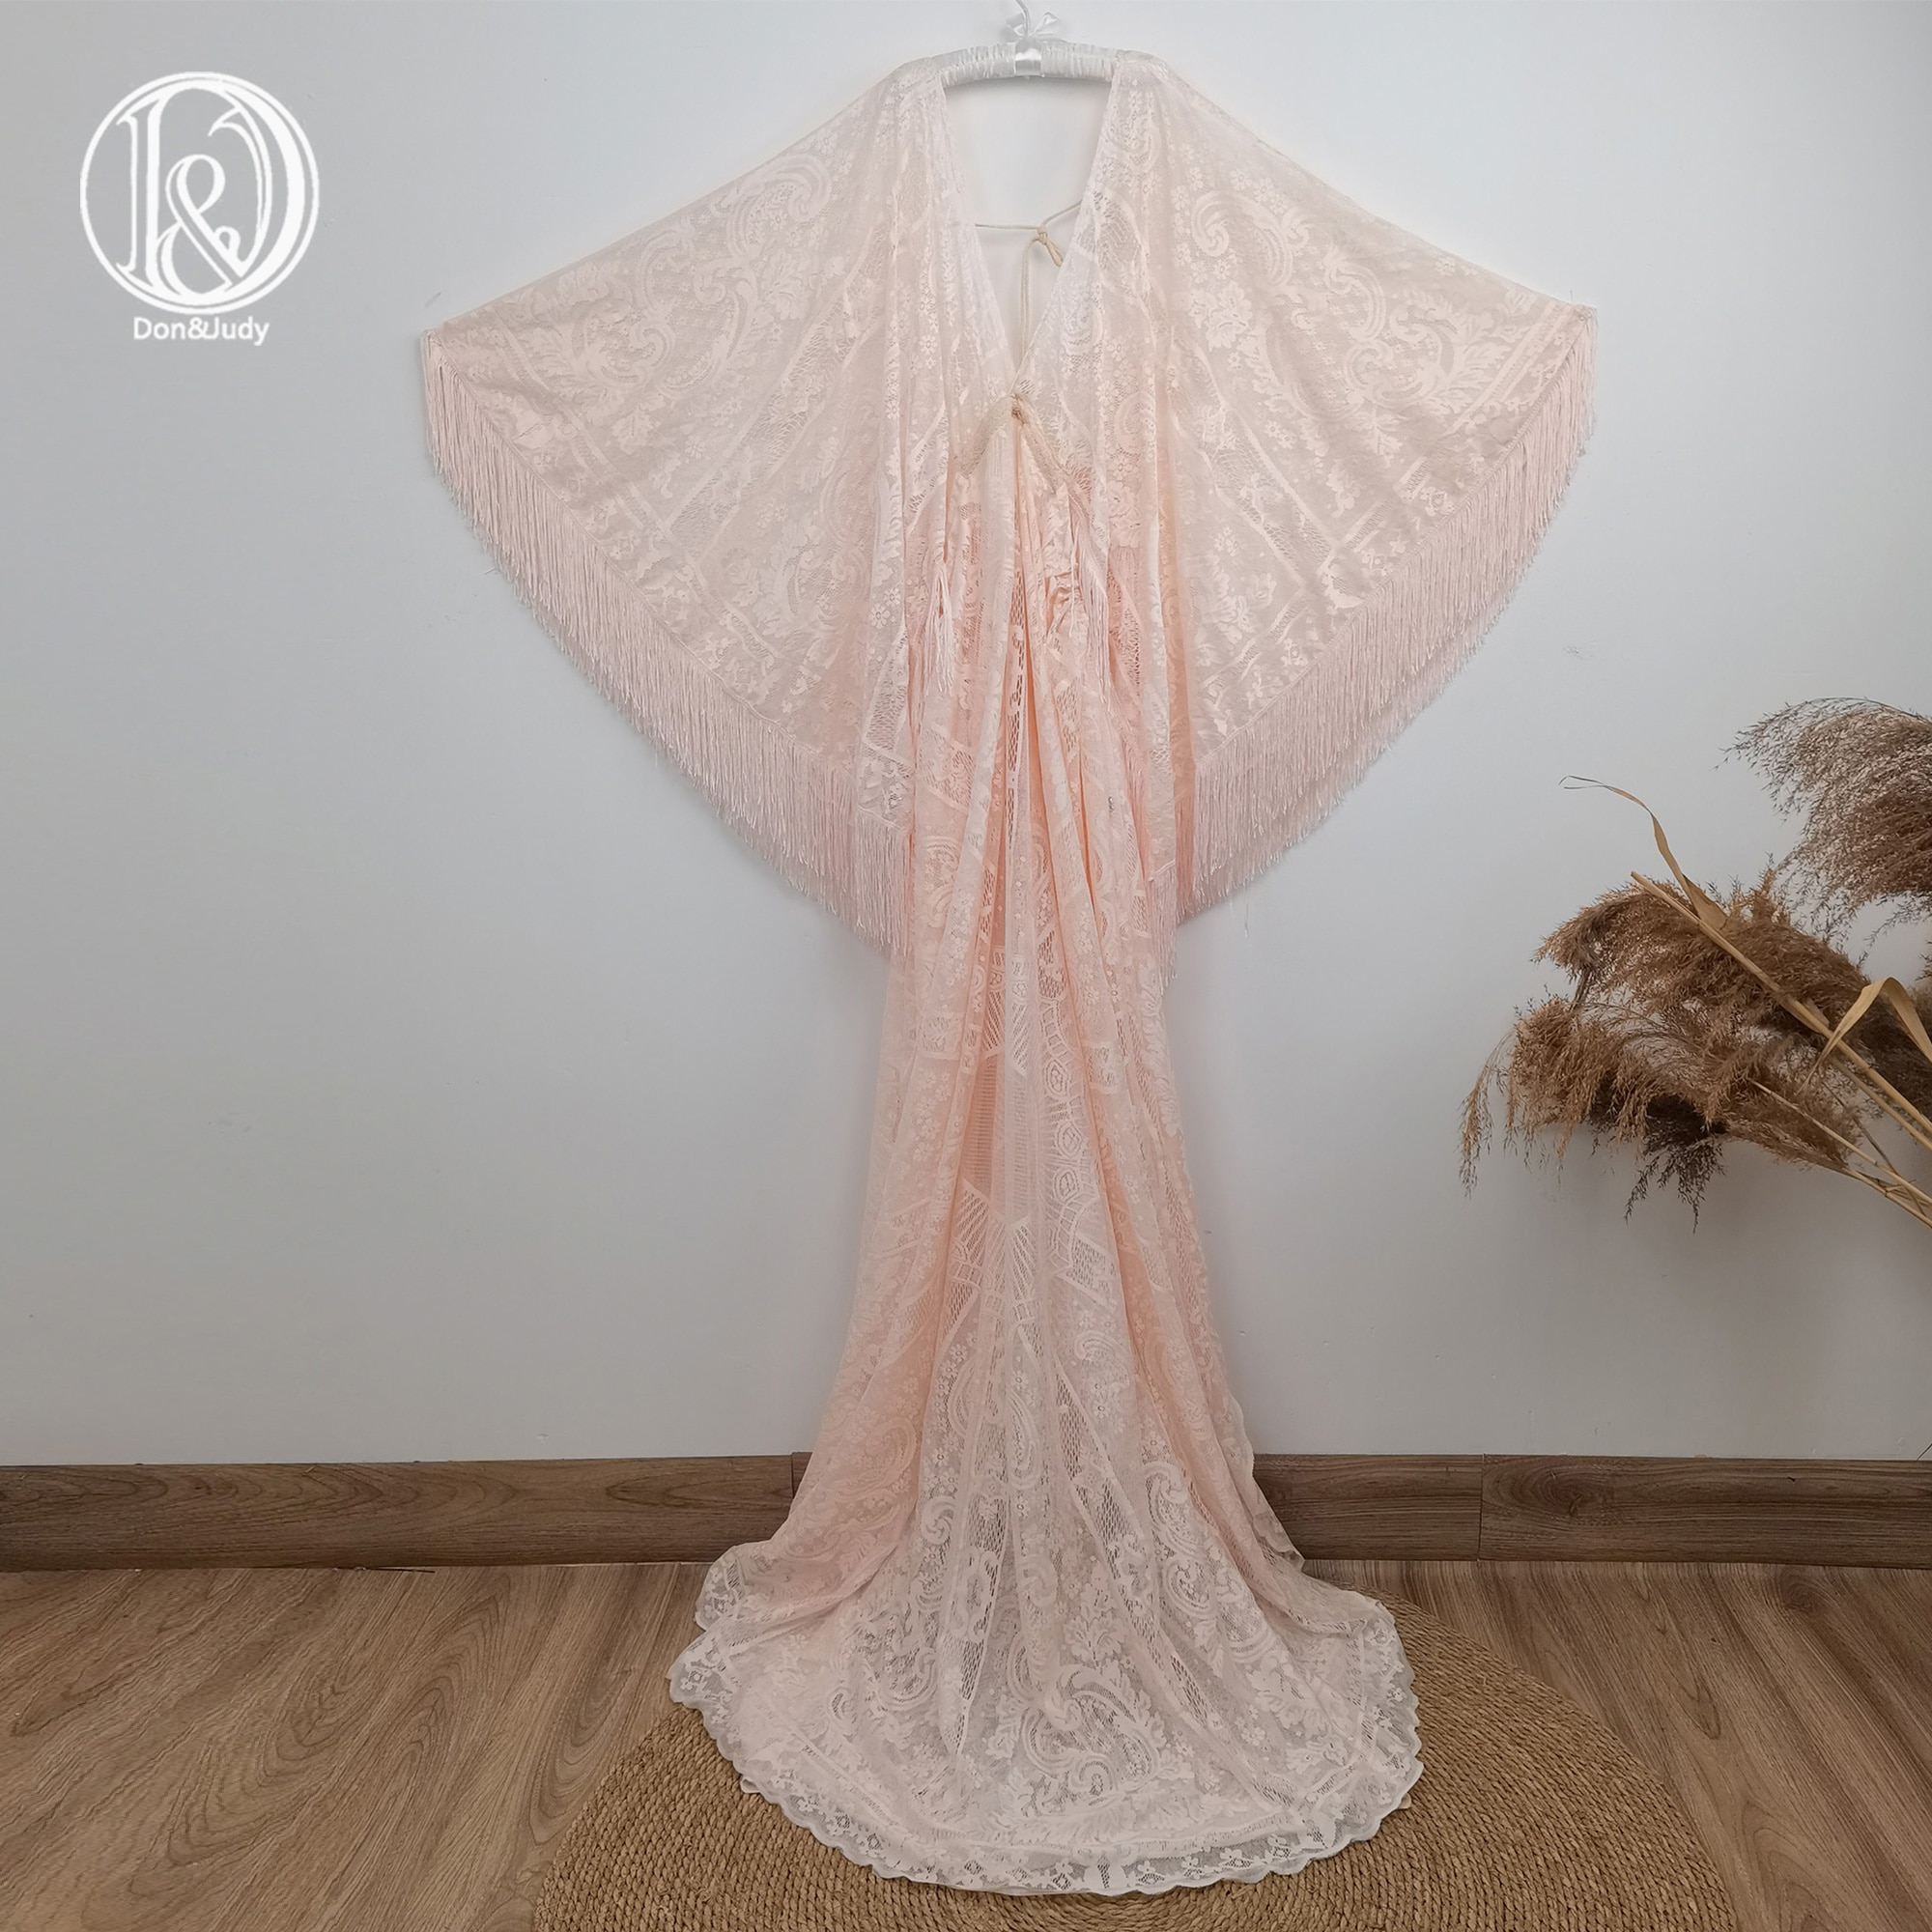 Don&Judy Long Pink Maternity Shoot Dress Pregnancy Photography Dresses Maxi Boho Maternity Gown Photo Prop For Pregnant 2021